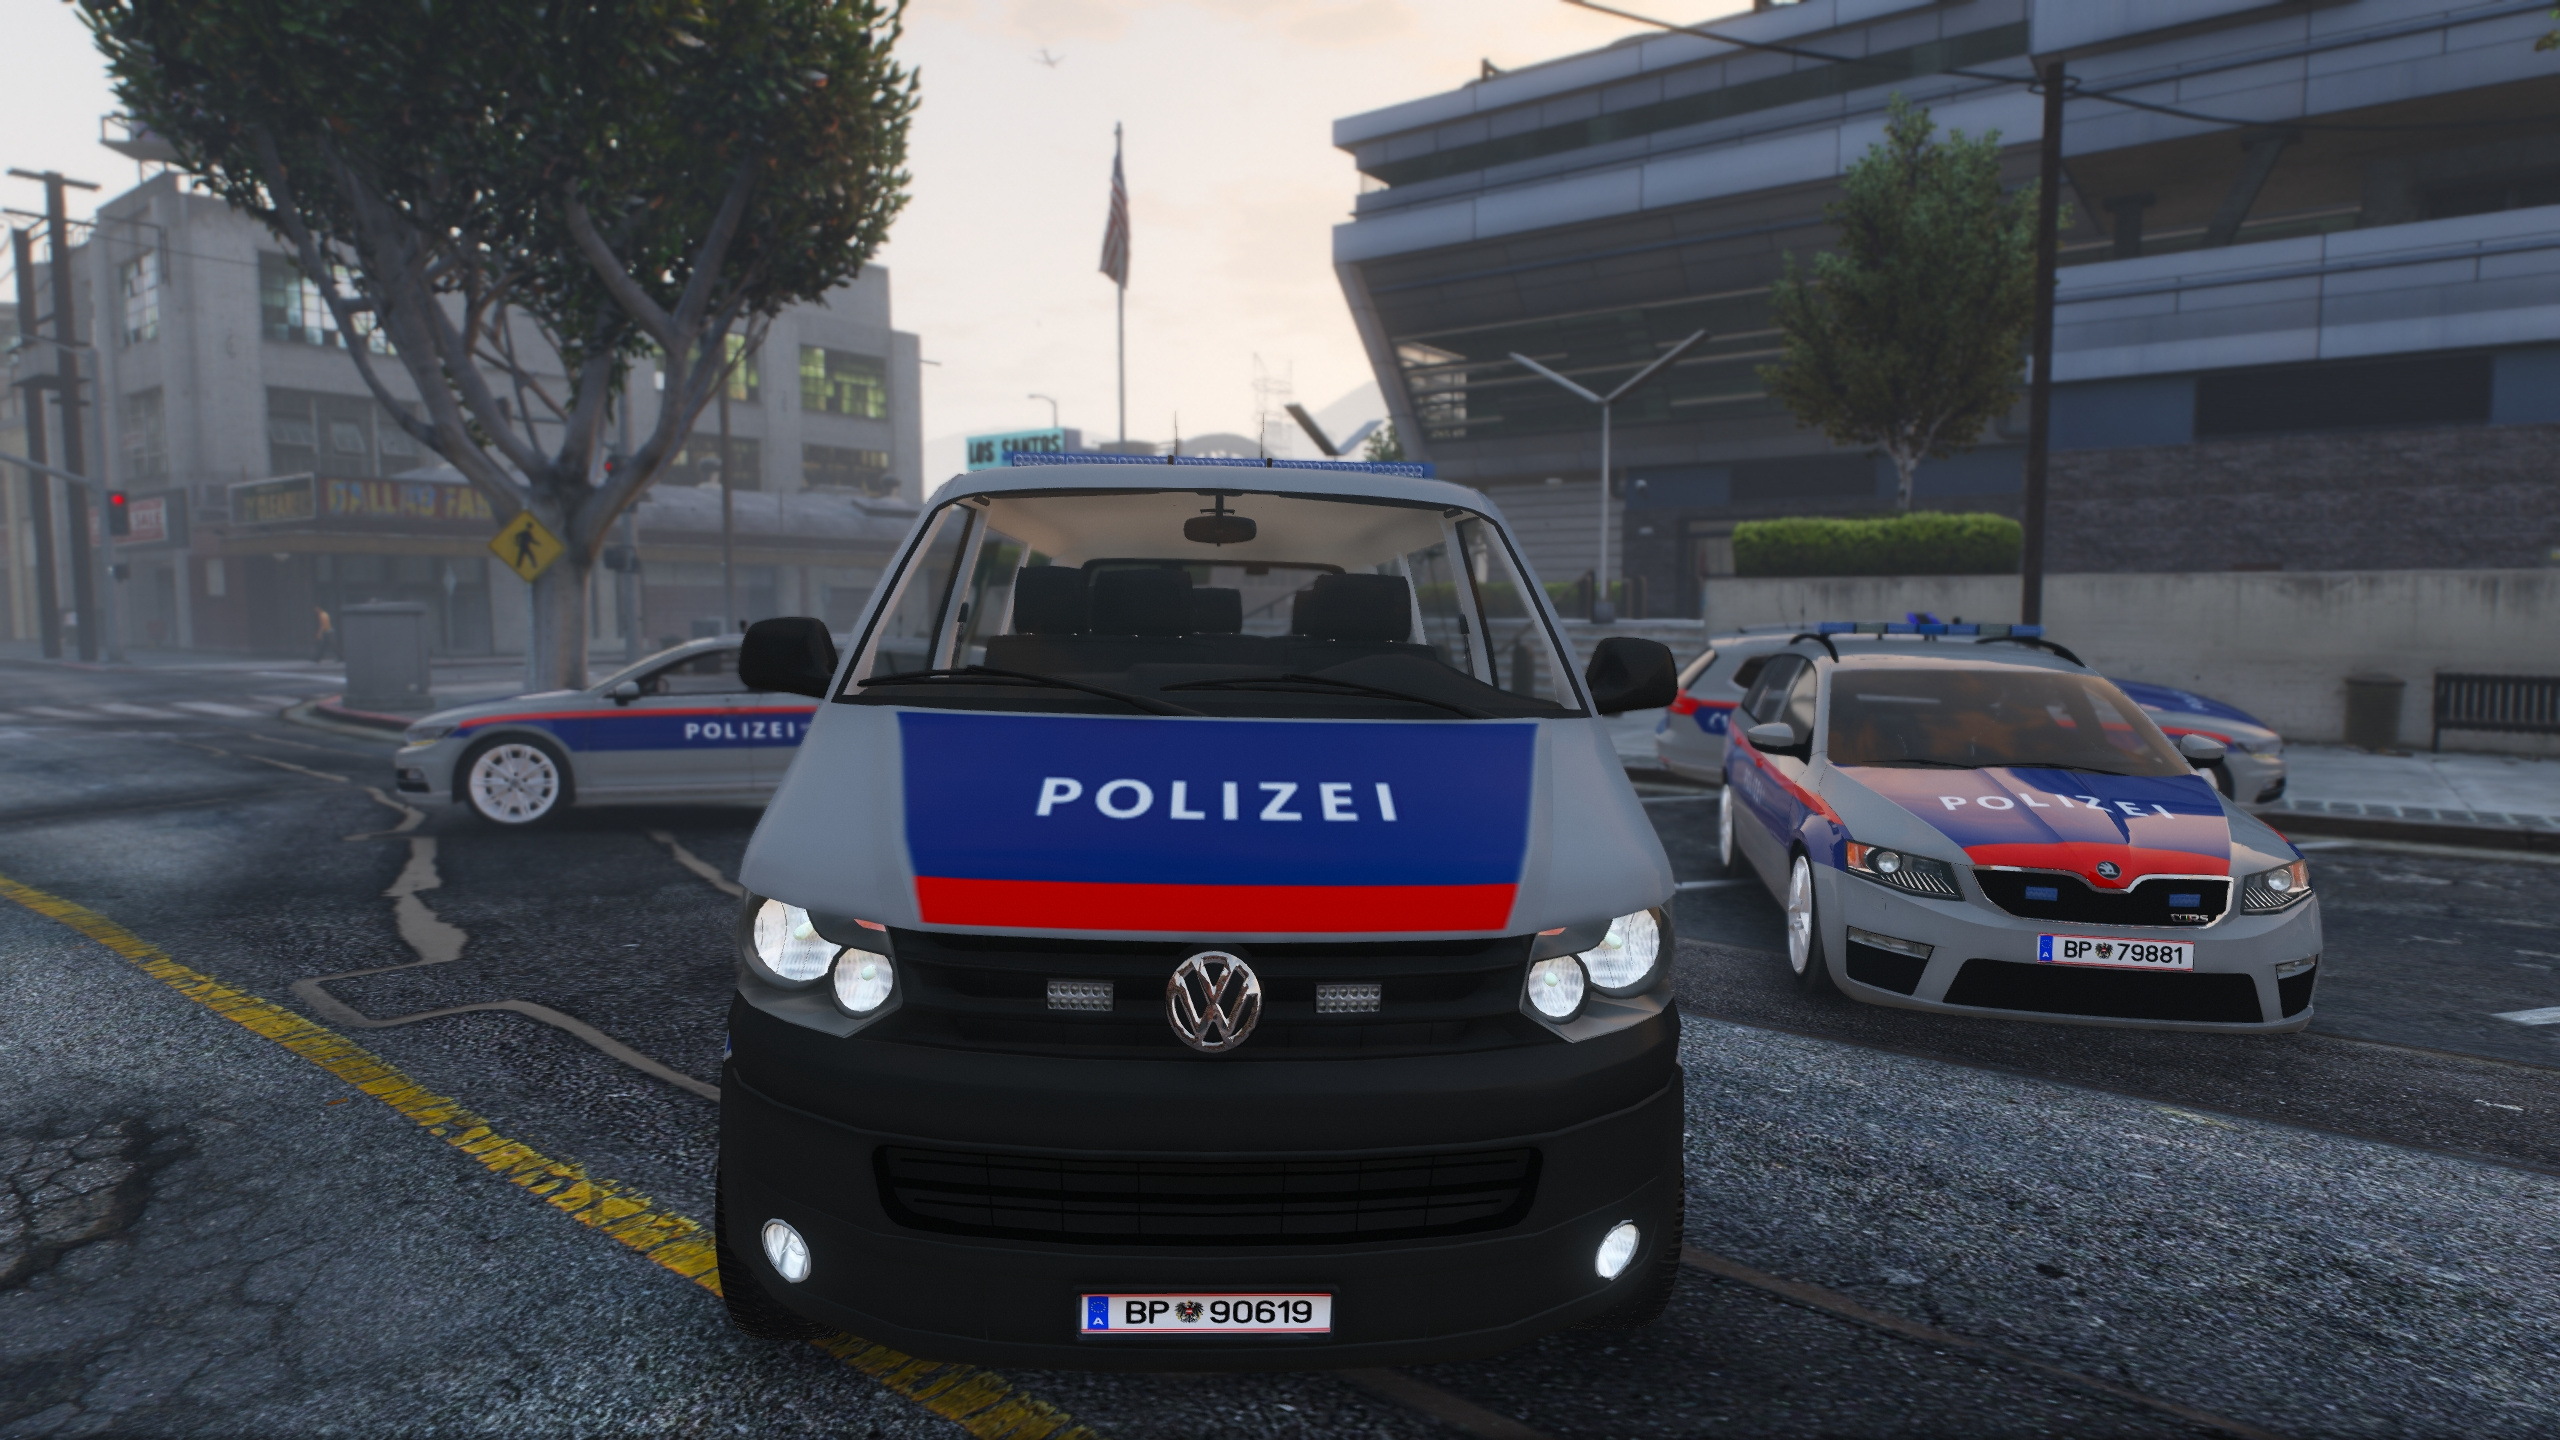 sterreich austria police mod volkswagen passat t5 golf. Black Bedroom Furniture Sets. Home Design Ideas